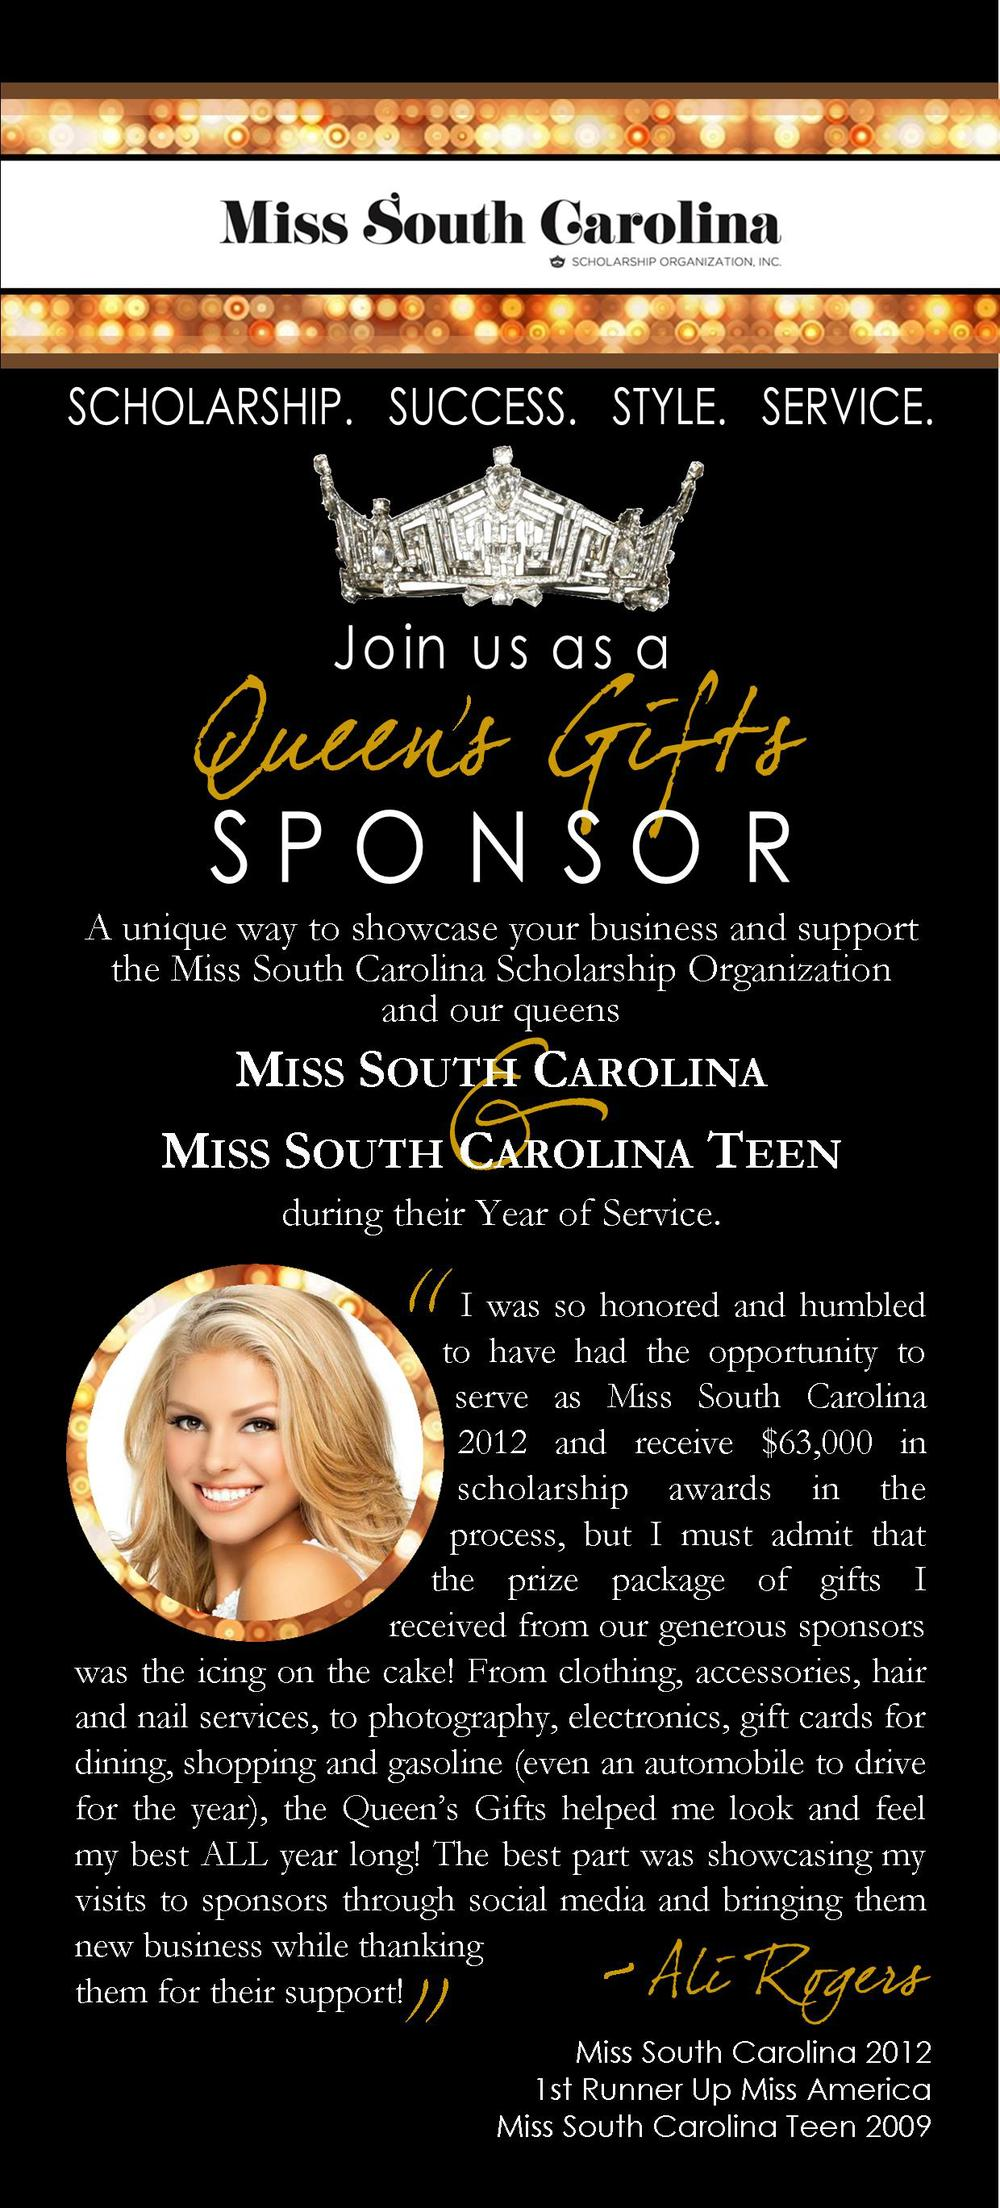 BROCHURE INSERT / Miss South Carolina Scholarship Organization, Inc.